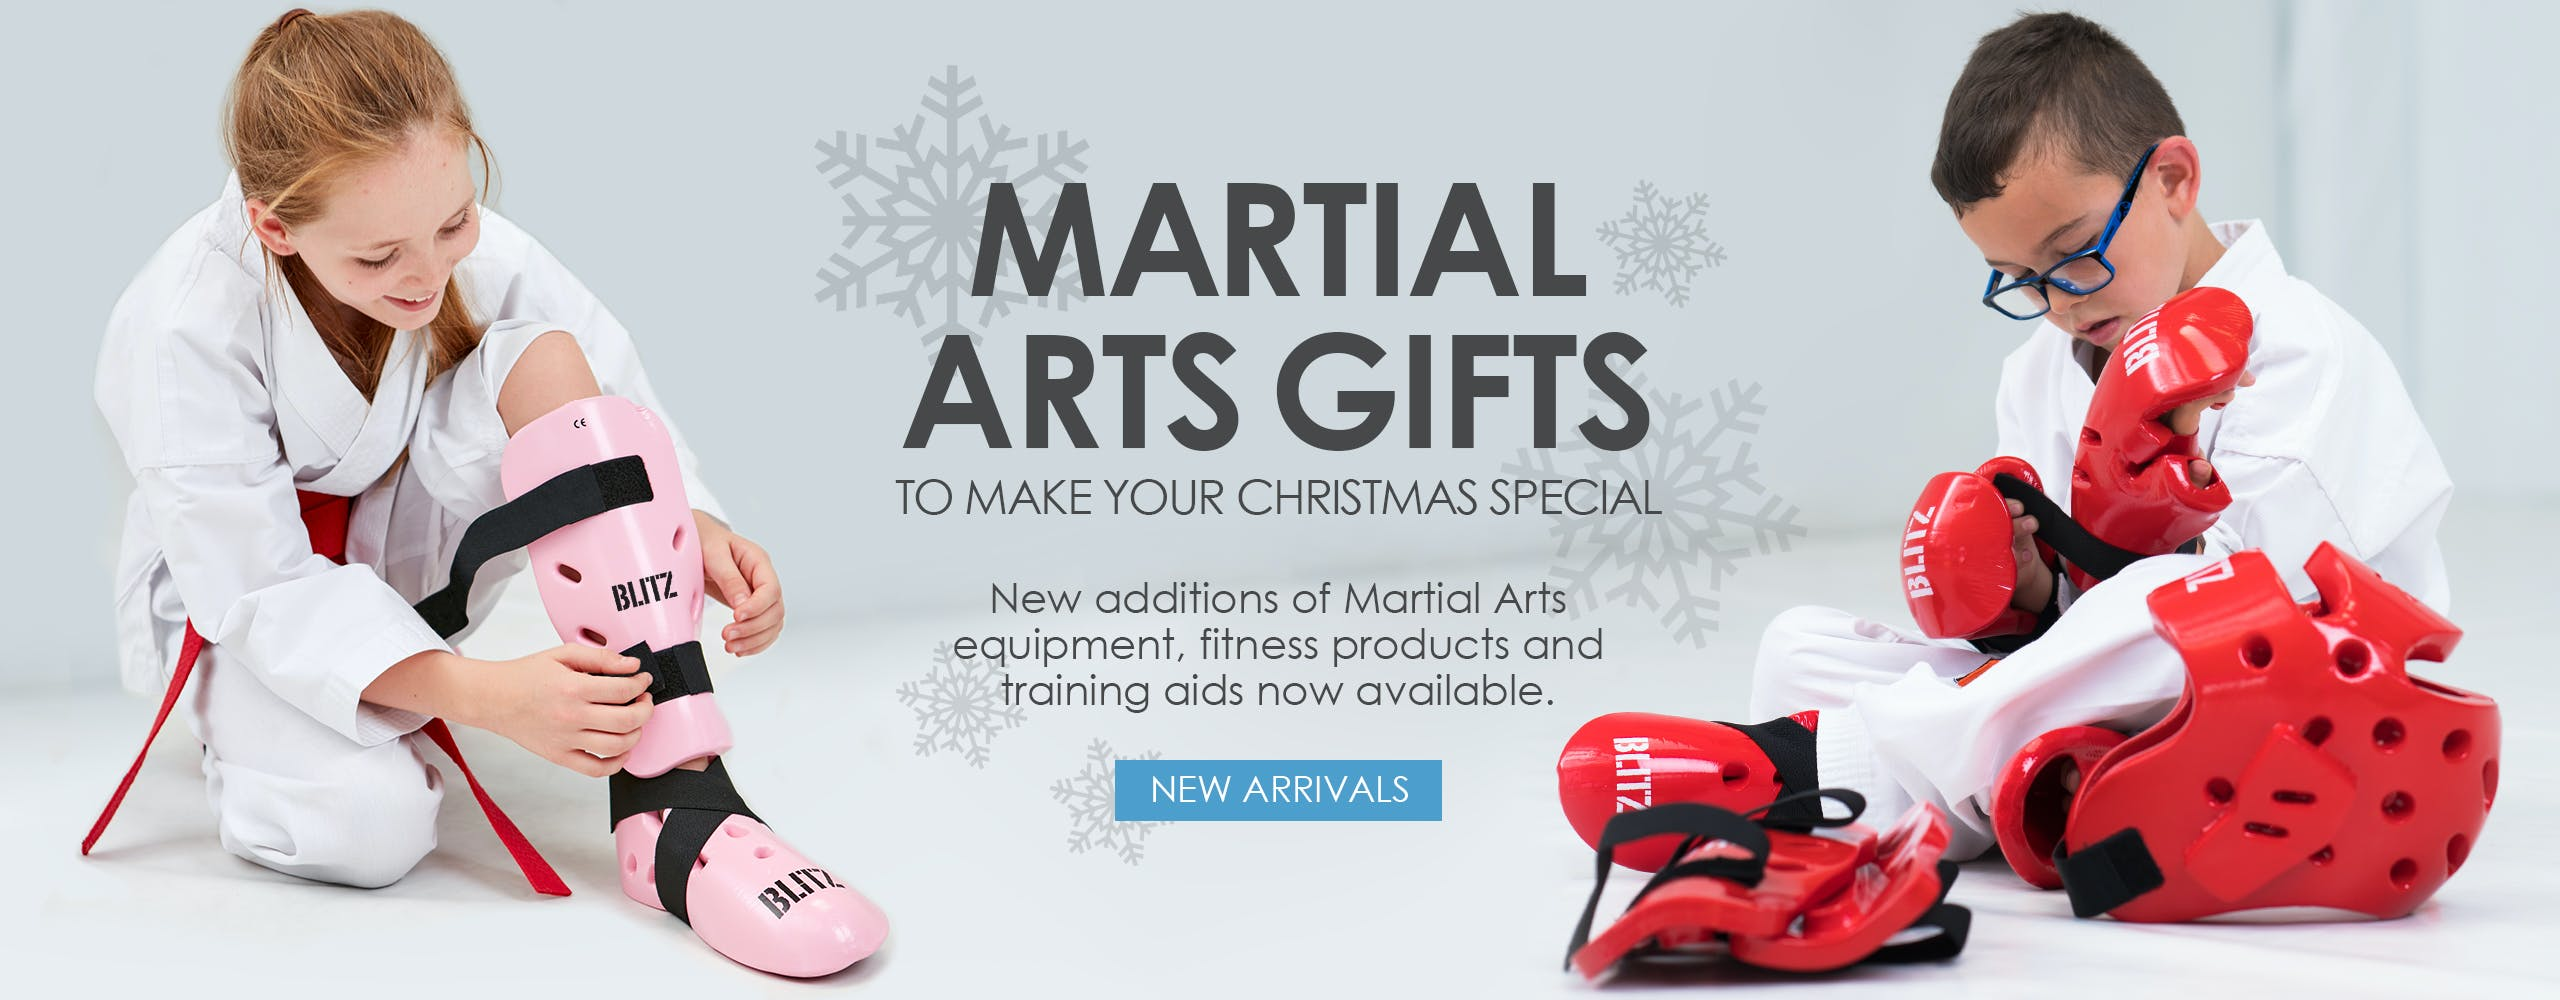 Perfect Martial Arts gifts to make your Christmas special. New additions of Martial Arts equipment, fitness products and training aids now available.